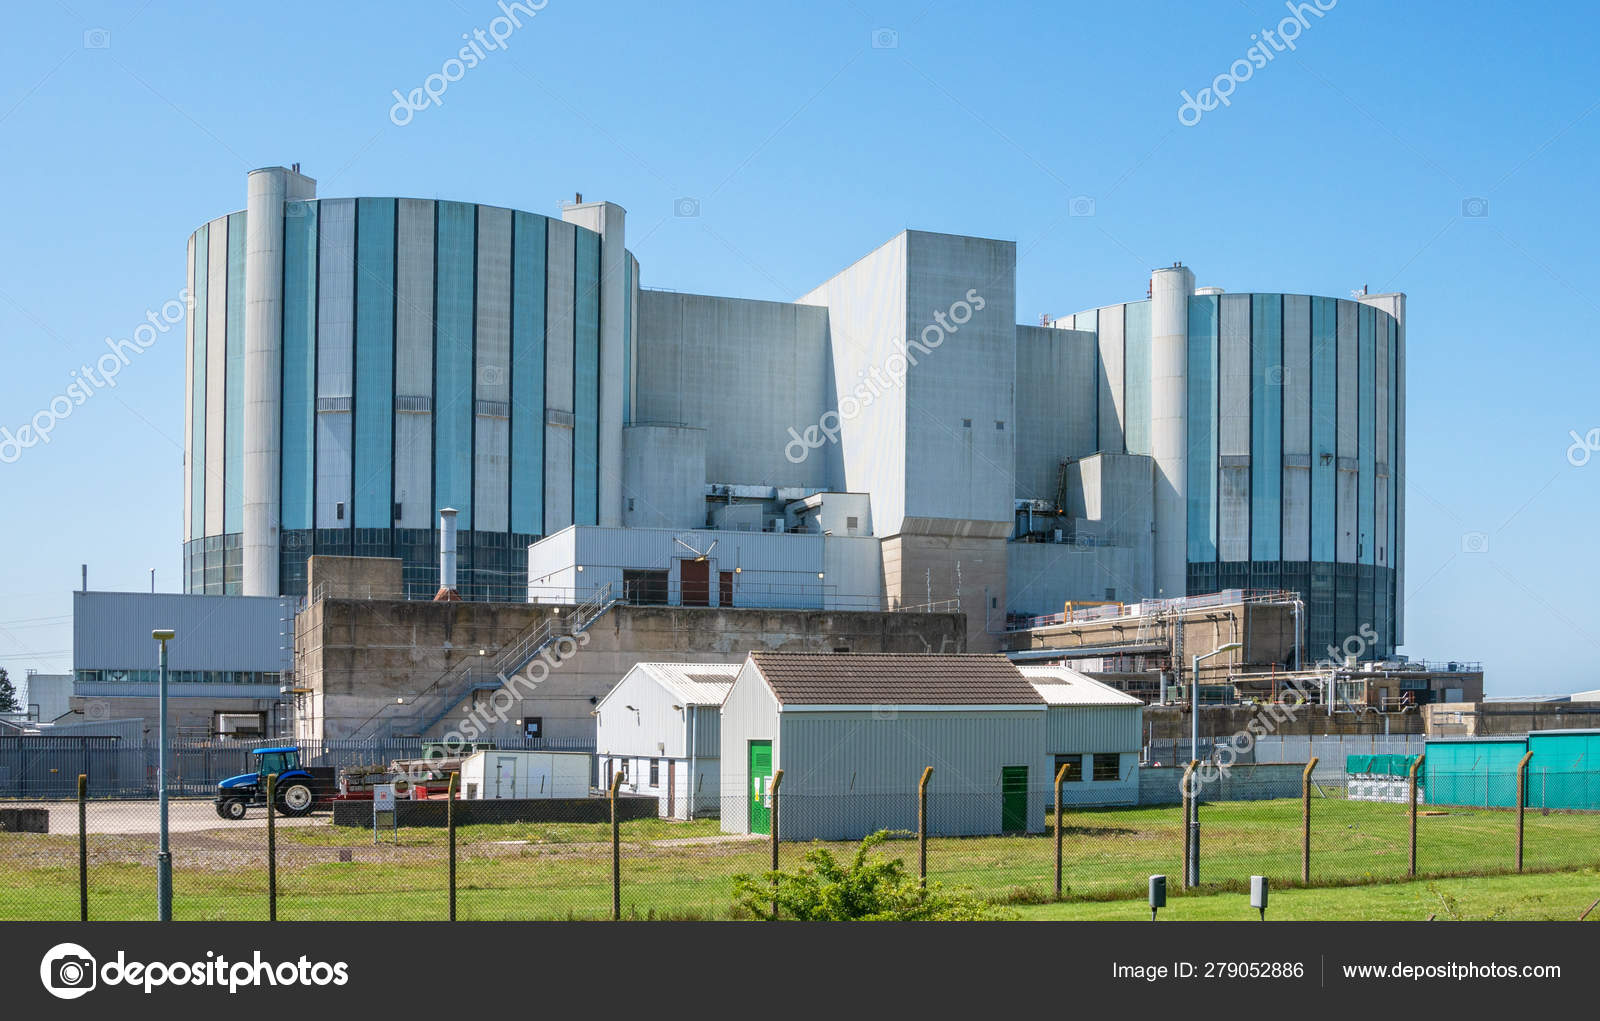 Oldbury Magnox Nuclear Power Station Now Decommissioned One